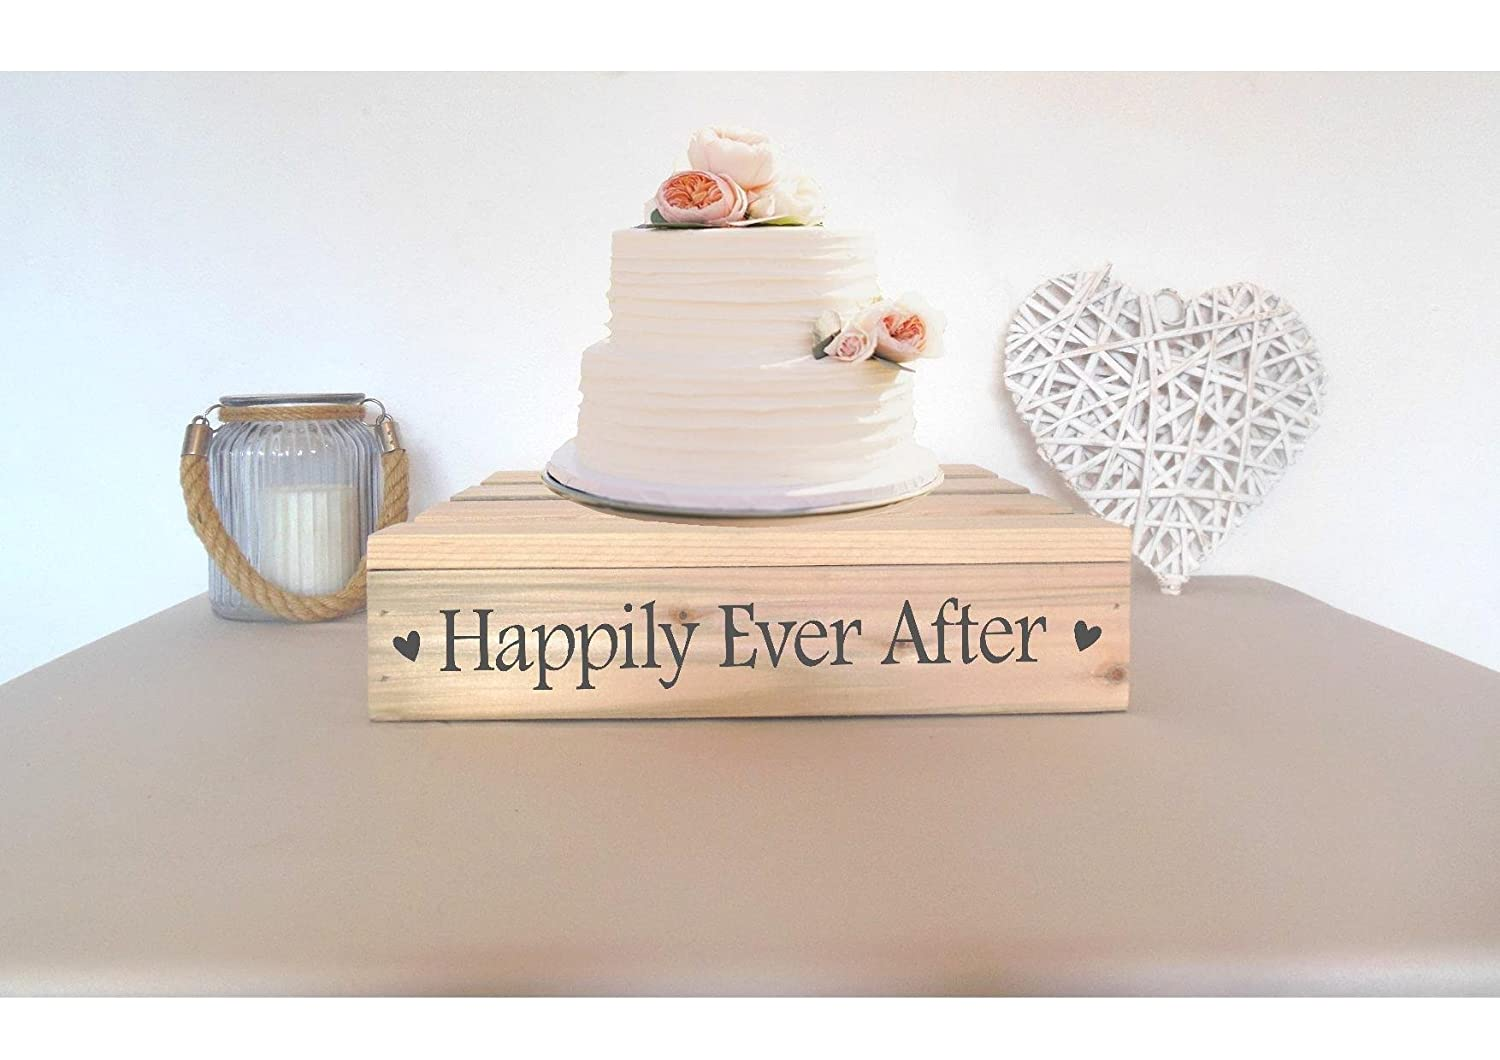 14' Square Wooden Rustic Wedding Cake Stand